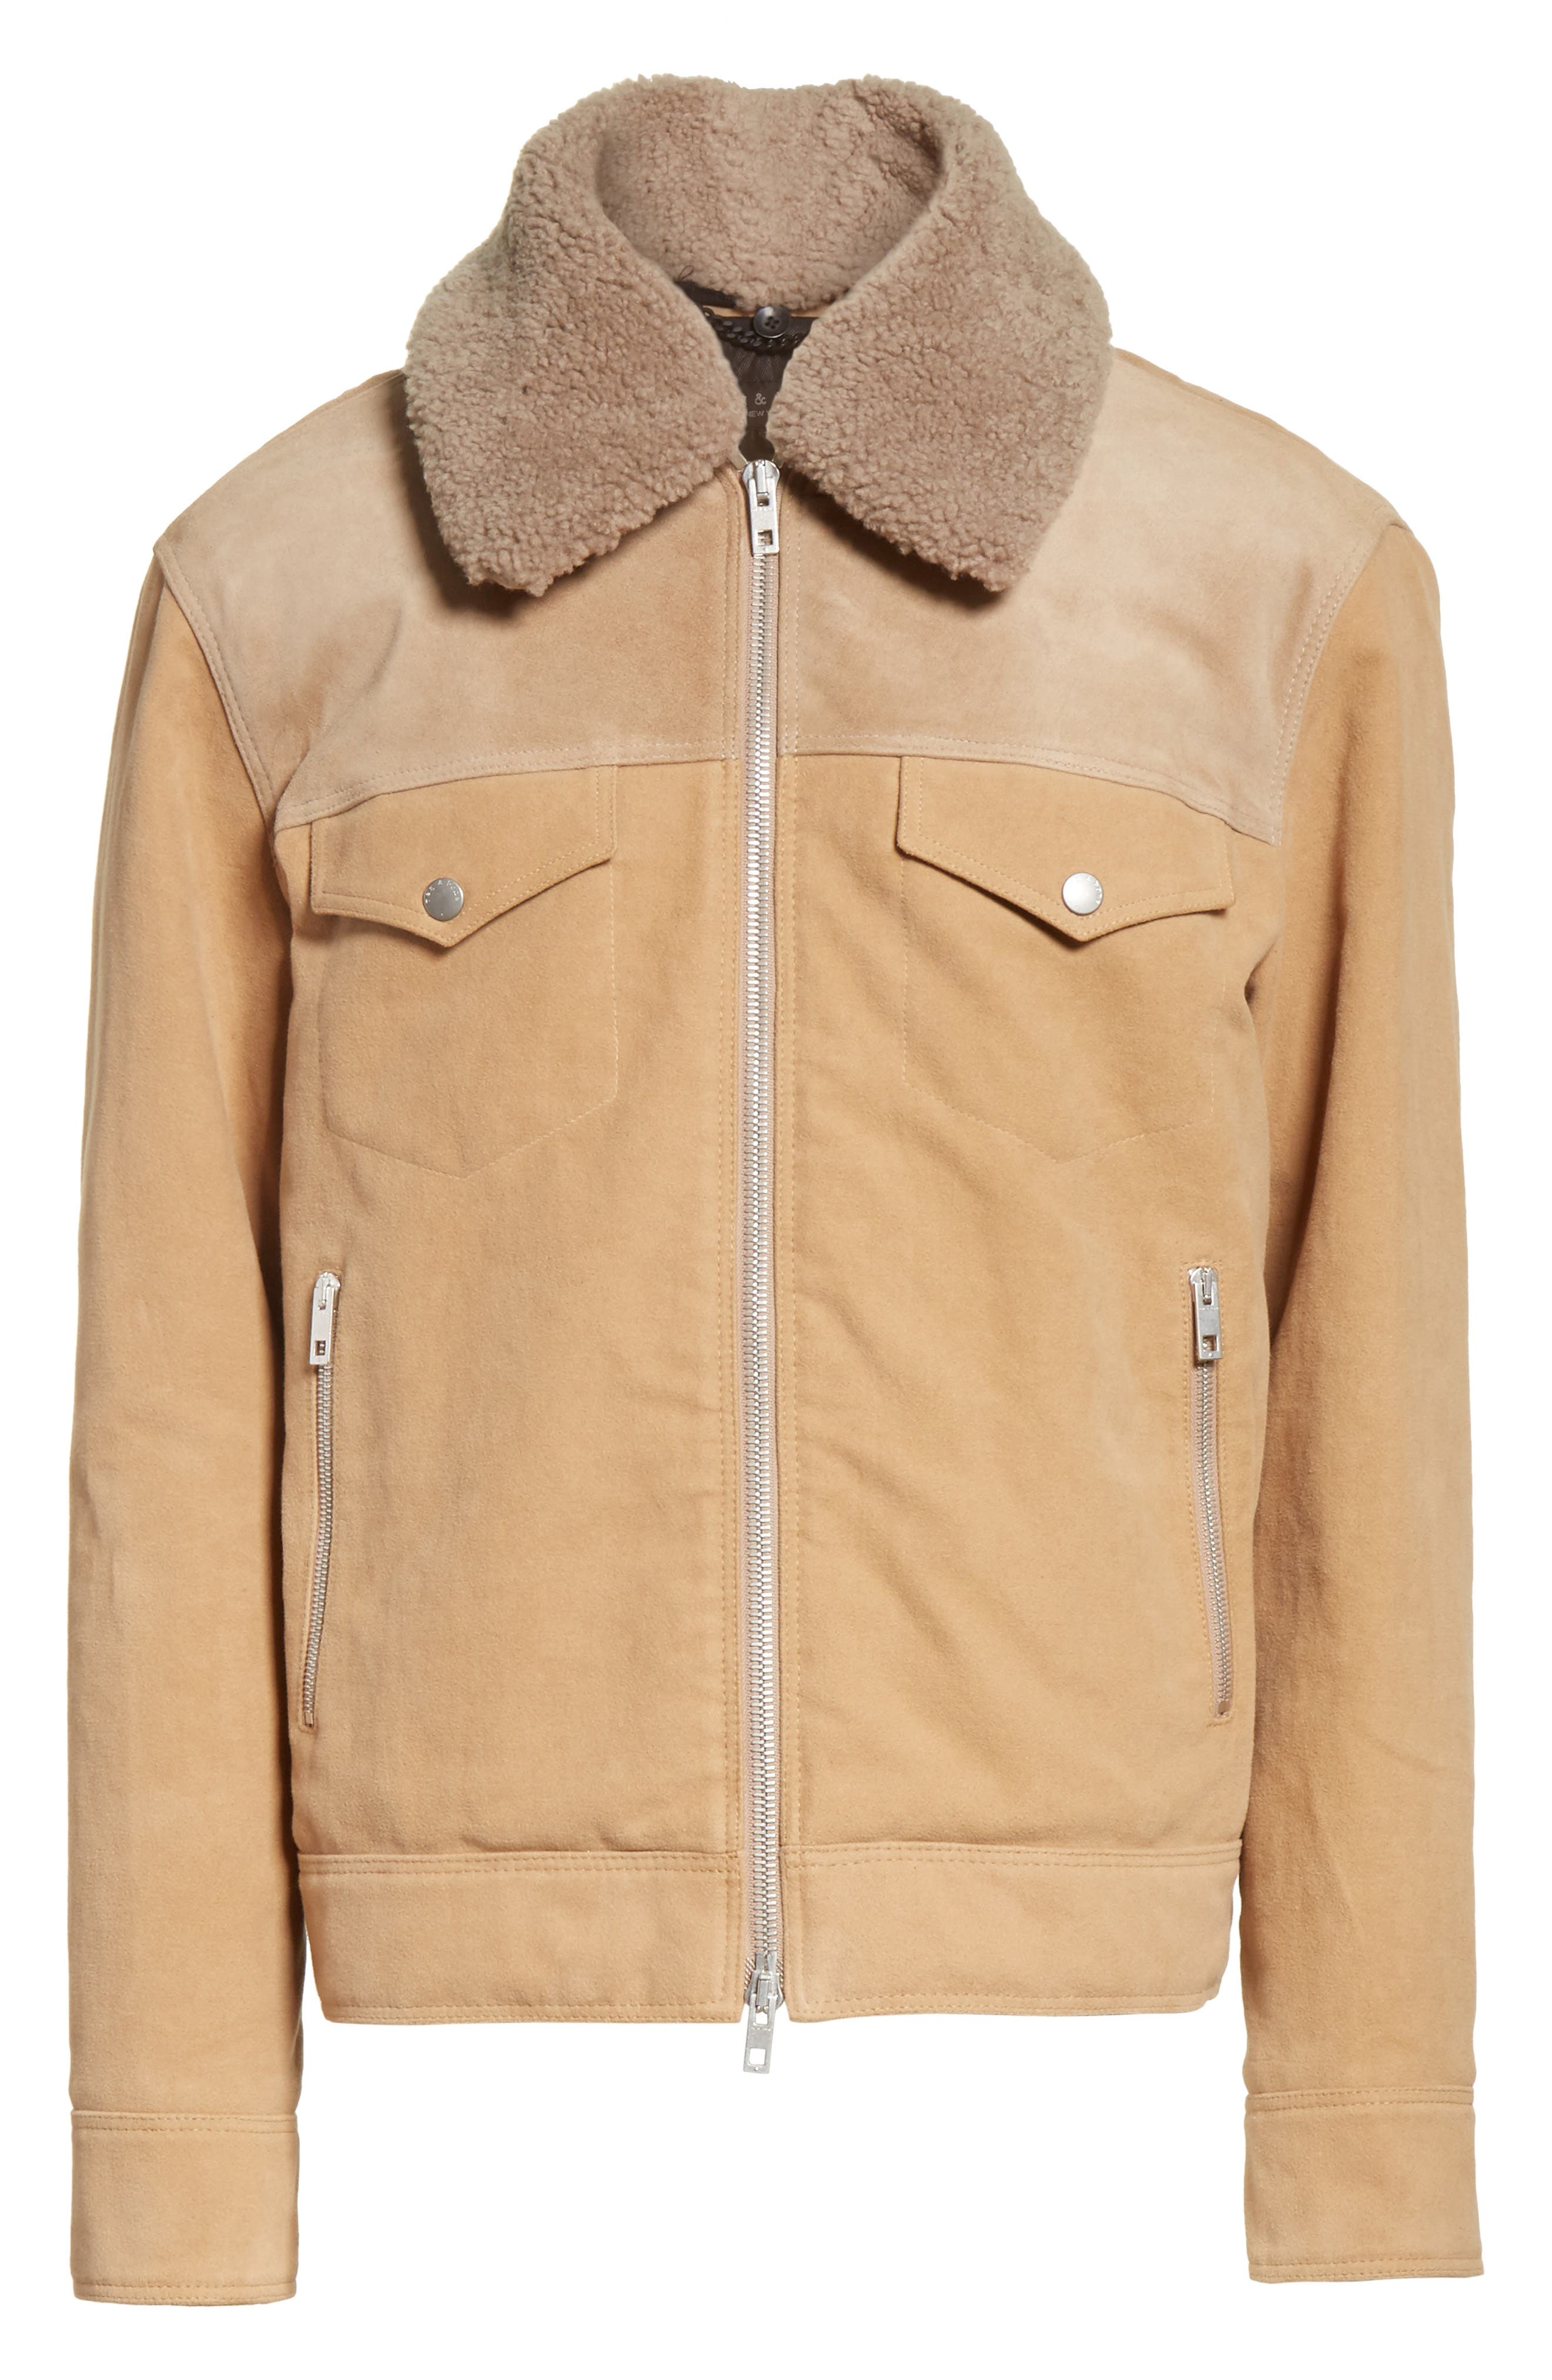 Matthew Work Jacket with Genuine Shearling Collar,                             Alternate thumbnail 5, color,                             230